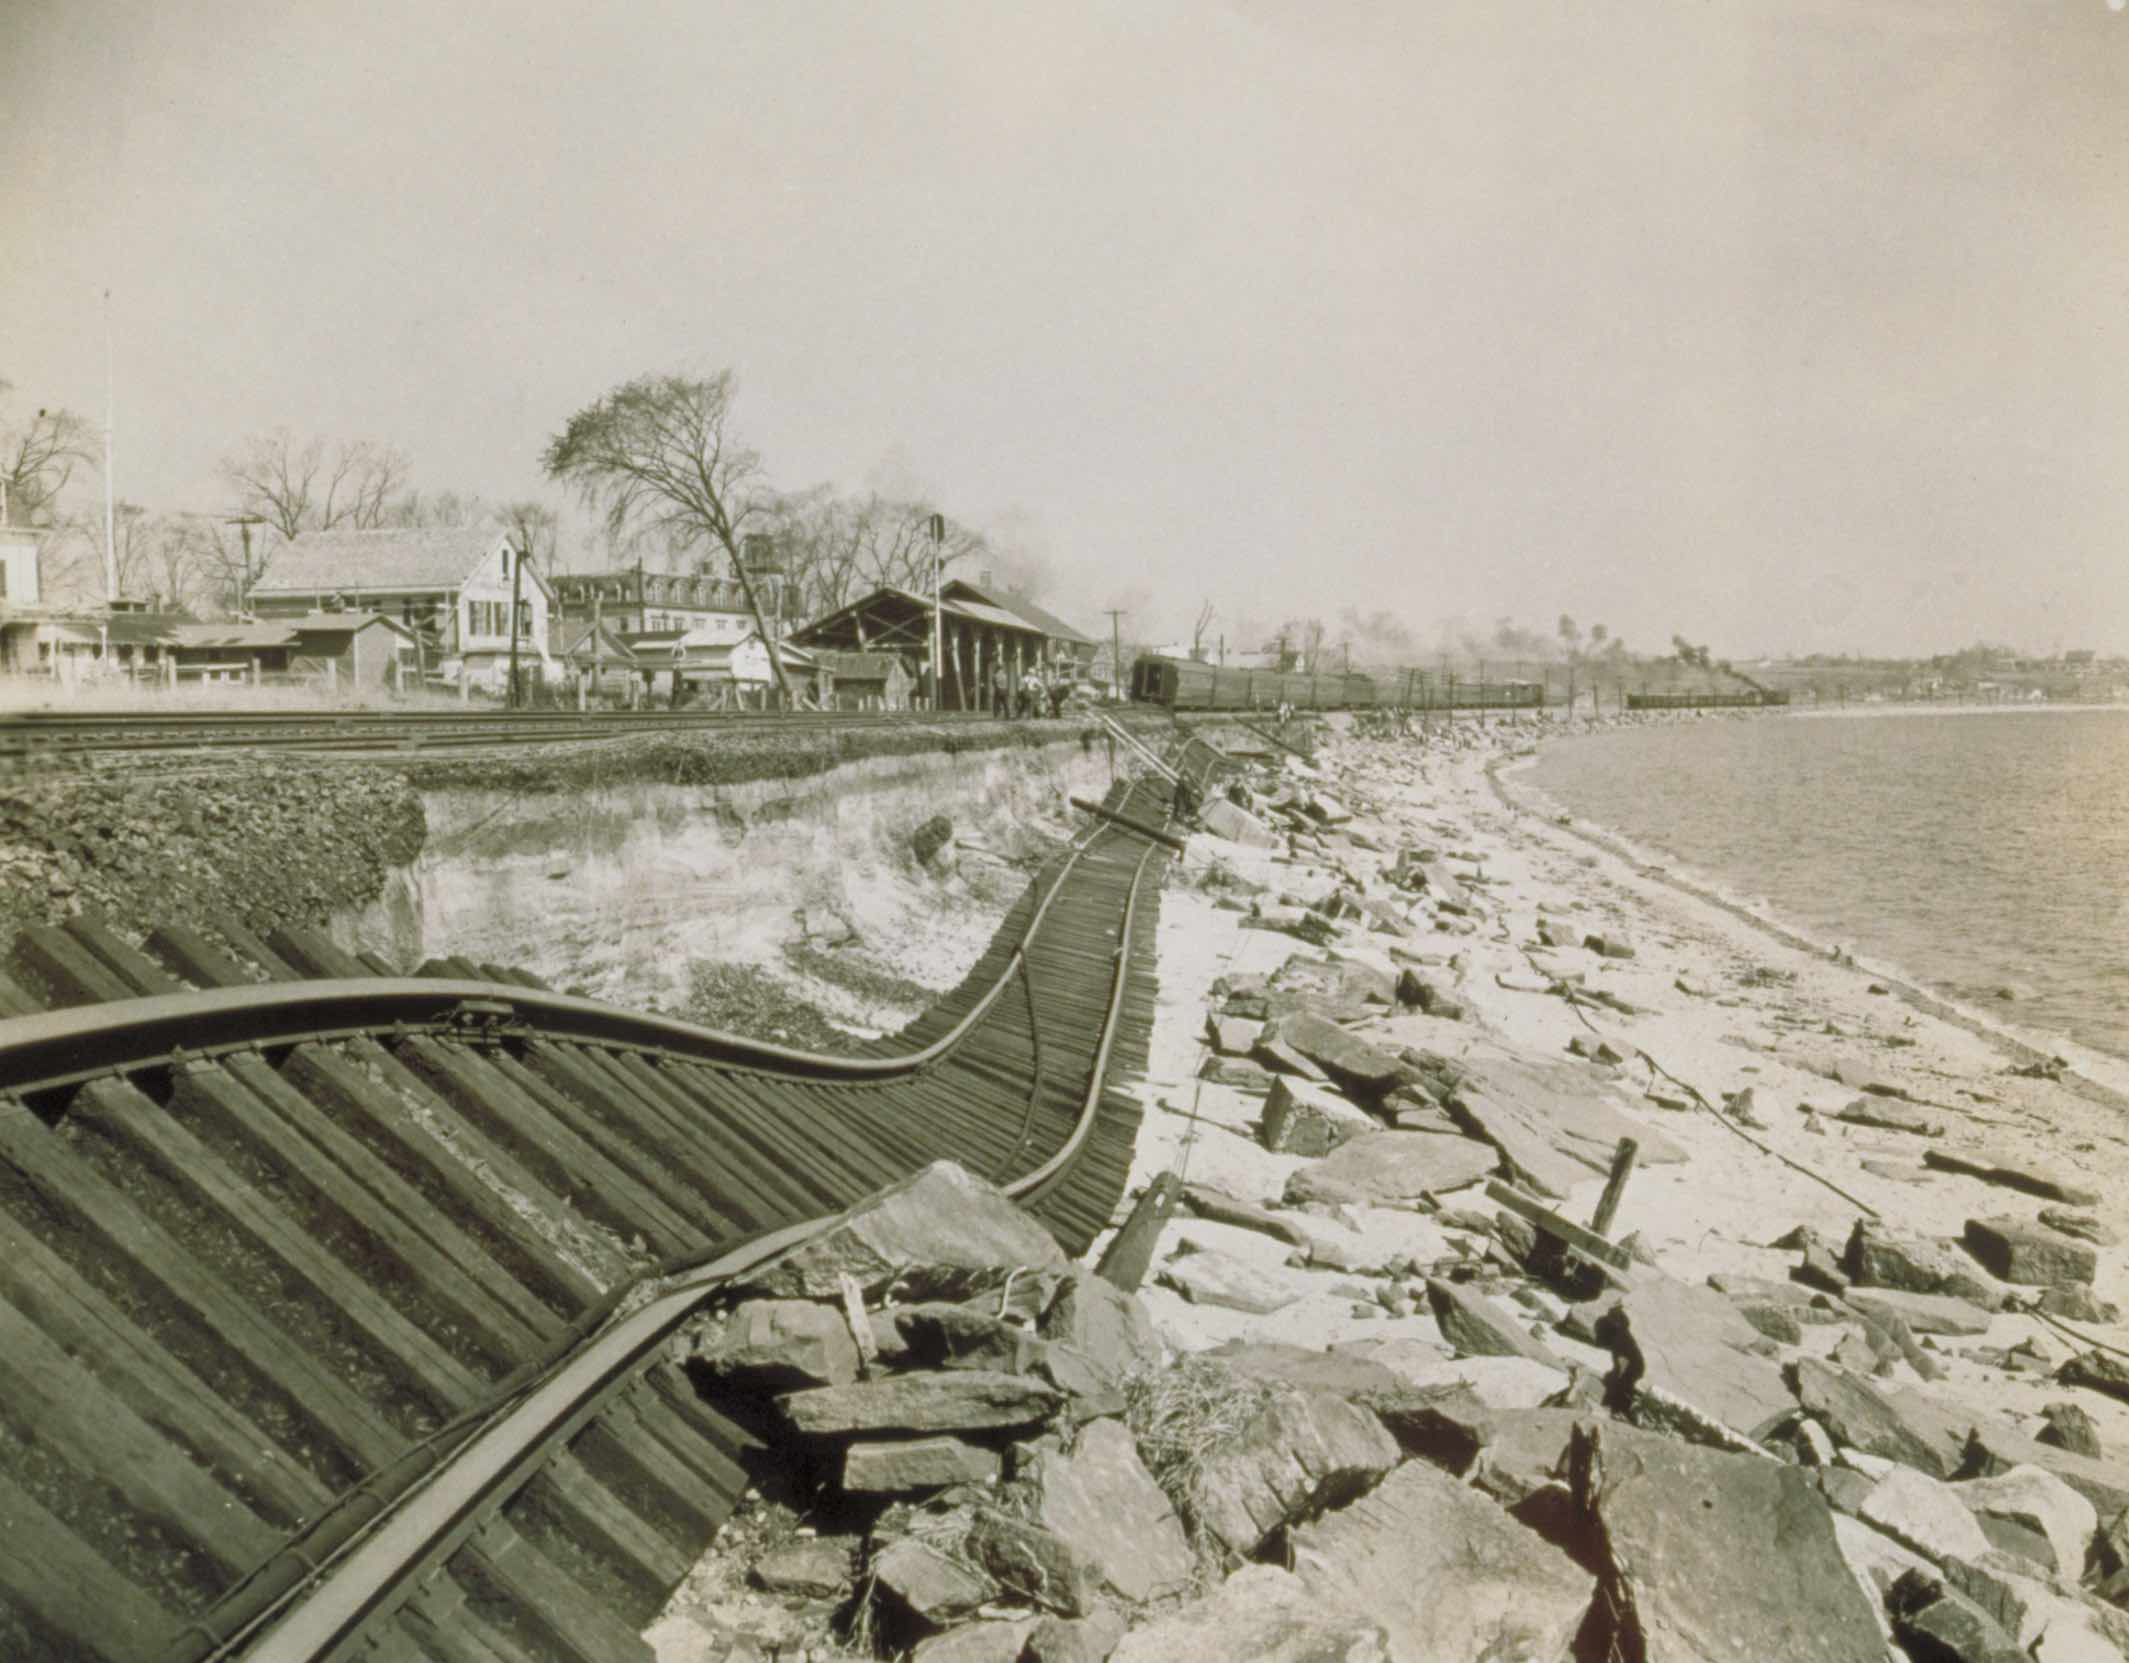 Niantic, Hurricane of 1938 (Courtesy: Archives & Special Collections at the Thomas J. Dodd Research, University of Connecticut Libraries)